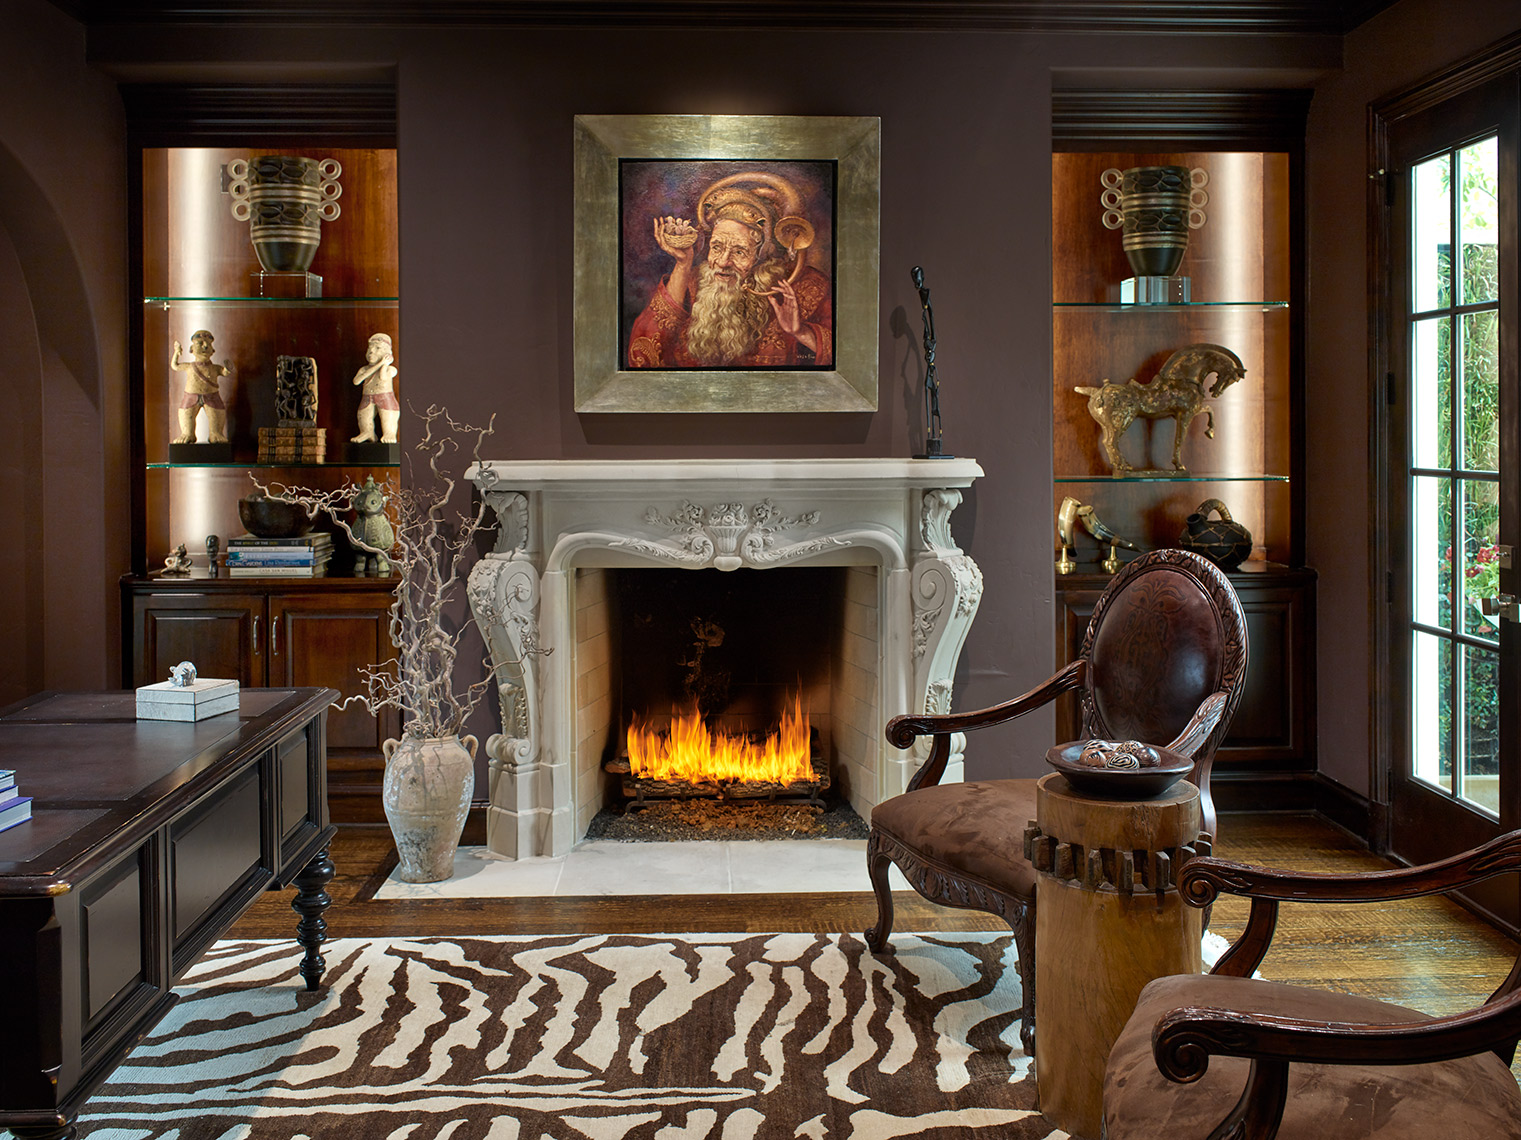 high end design in home studies | Joanie Wyll Interiors | award winning imagery